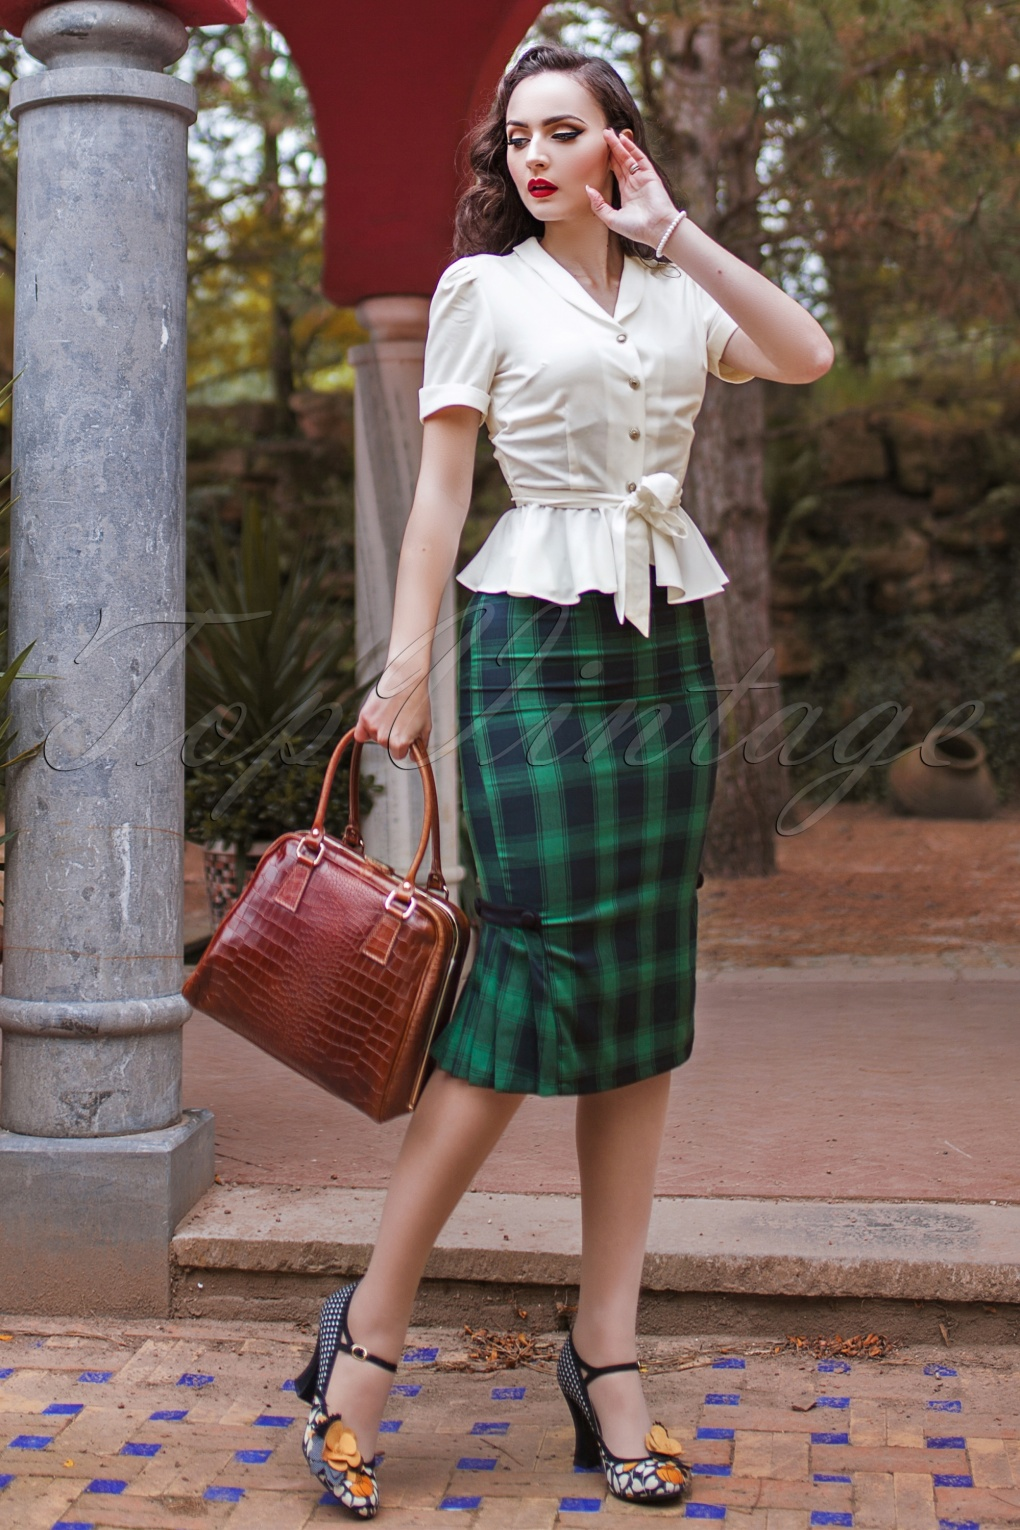 1950s Swing Skirt, Poodle Skirt, Pencil Skirts 40s Agnes Tartan Pencil Skirt in Green £35.43 AT vintagedancer.com